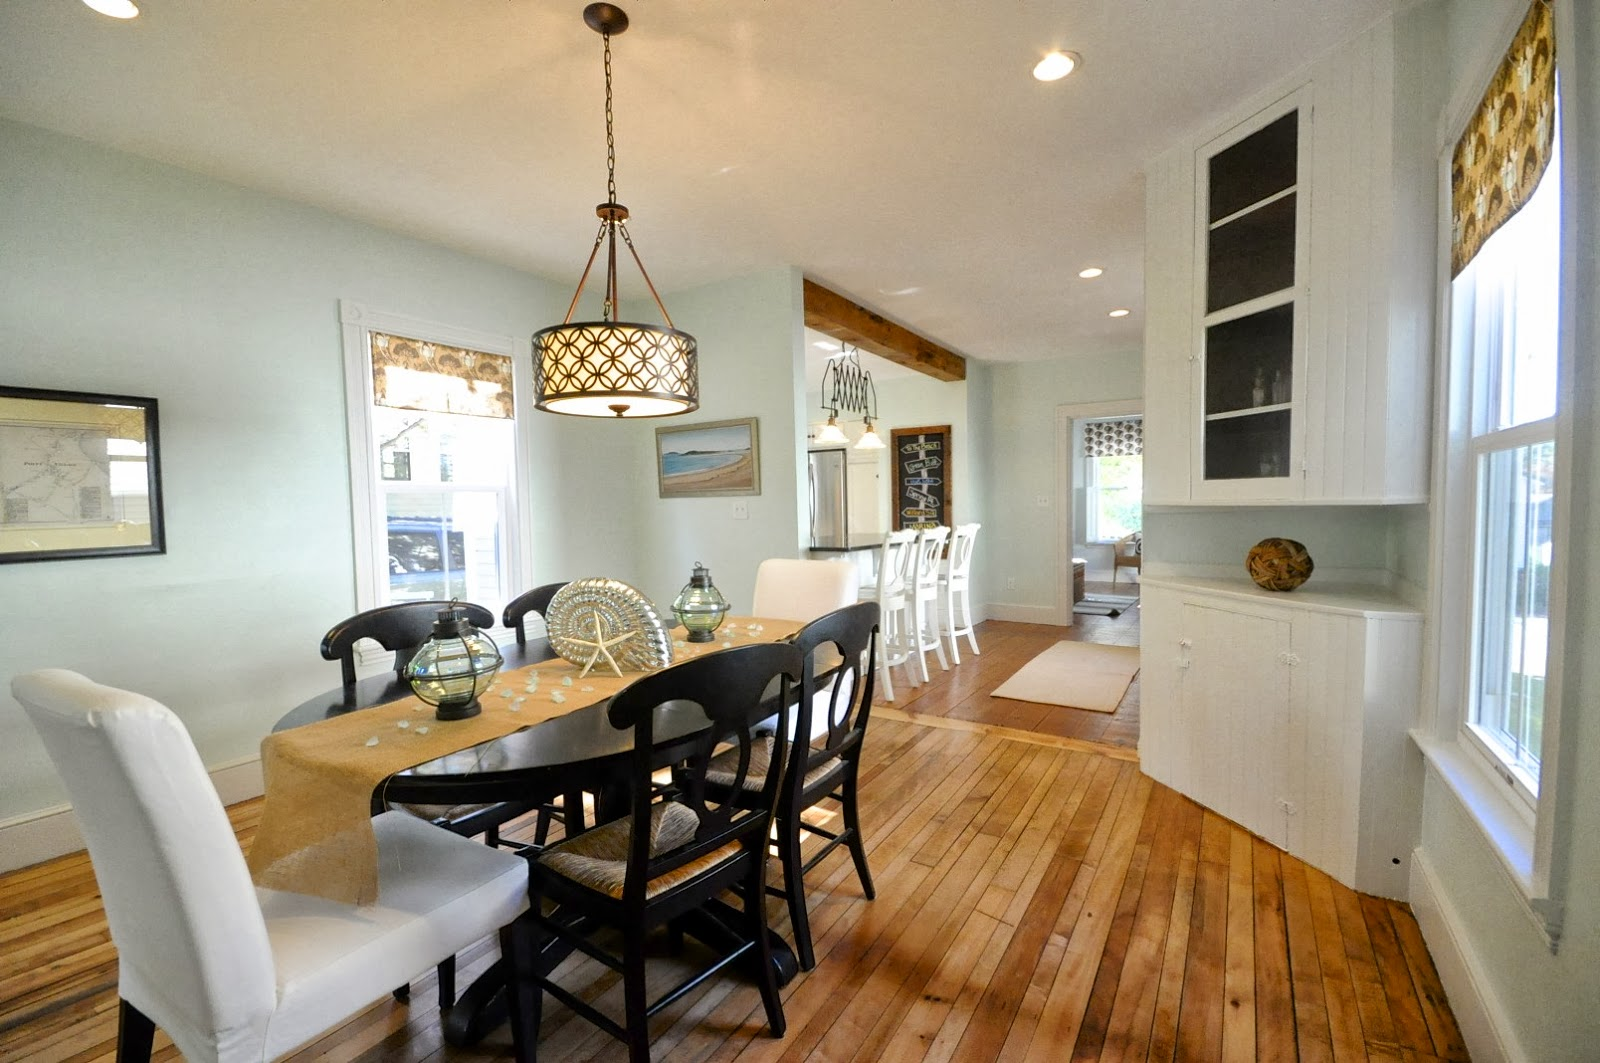 Dining Room Renovation Ideas Remodelaholic  Creating An Open Kitchen And Dining Room